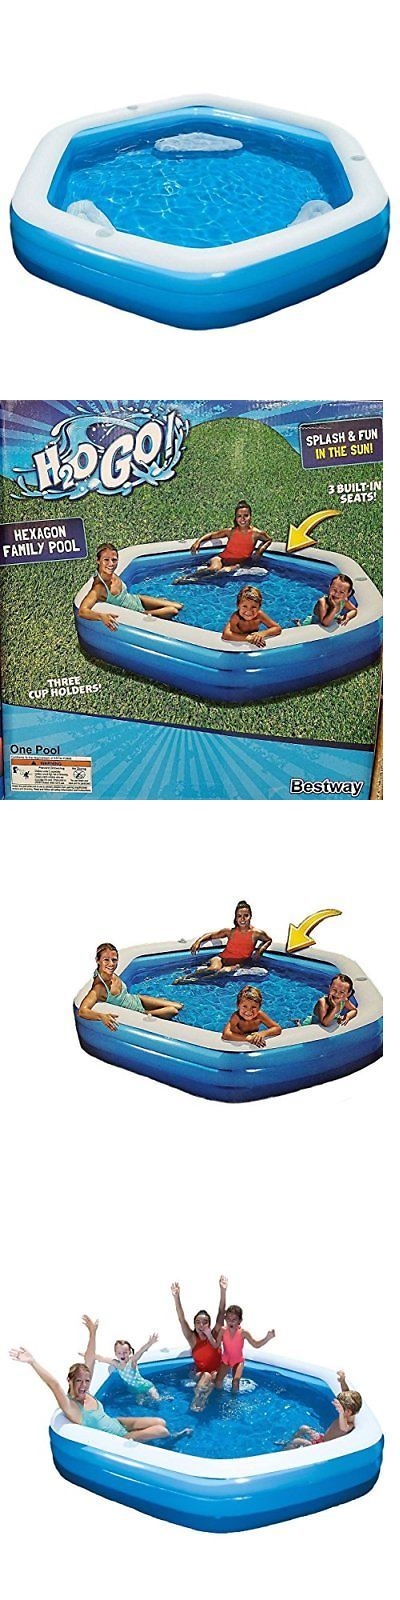 Inflatable and Kid Pools 116407: 8.5 Ft Hexagon Inflatable Swimming Pool Kids Above Ground Swimming Pool Summer -> BUY IT NOW ONLY: $91.44 on eBay!